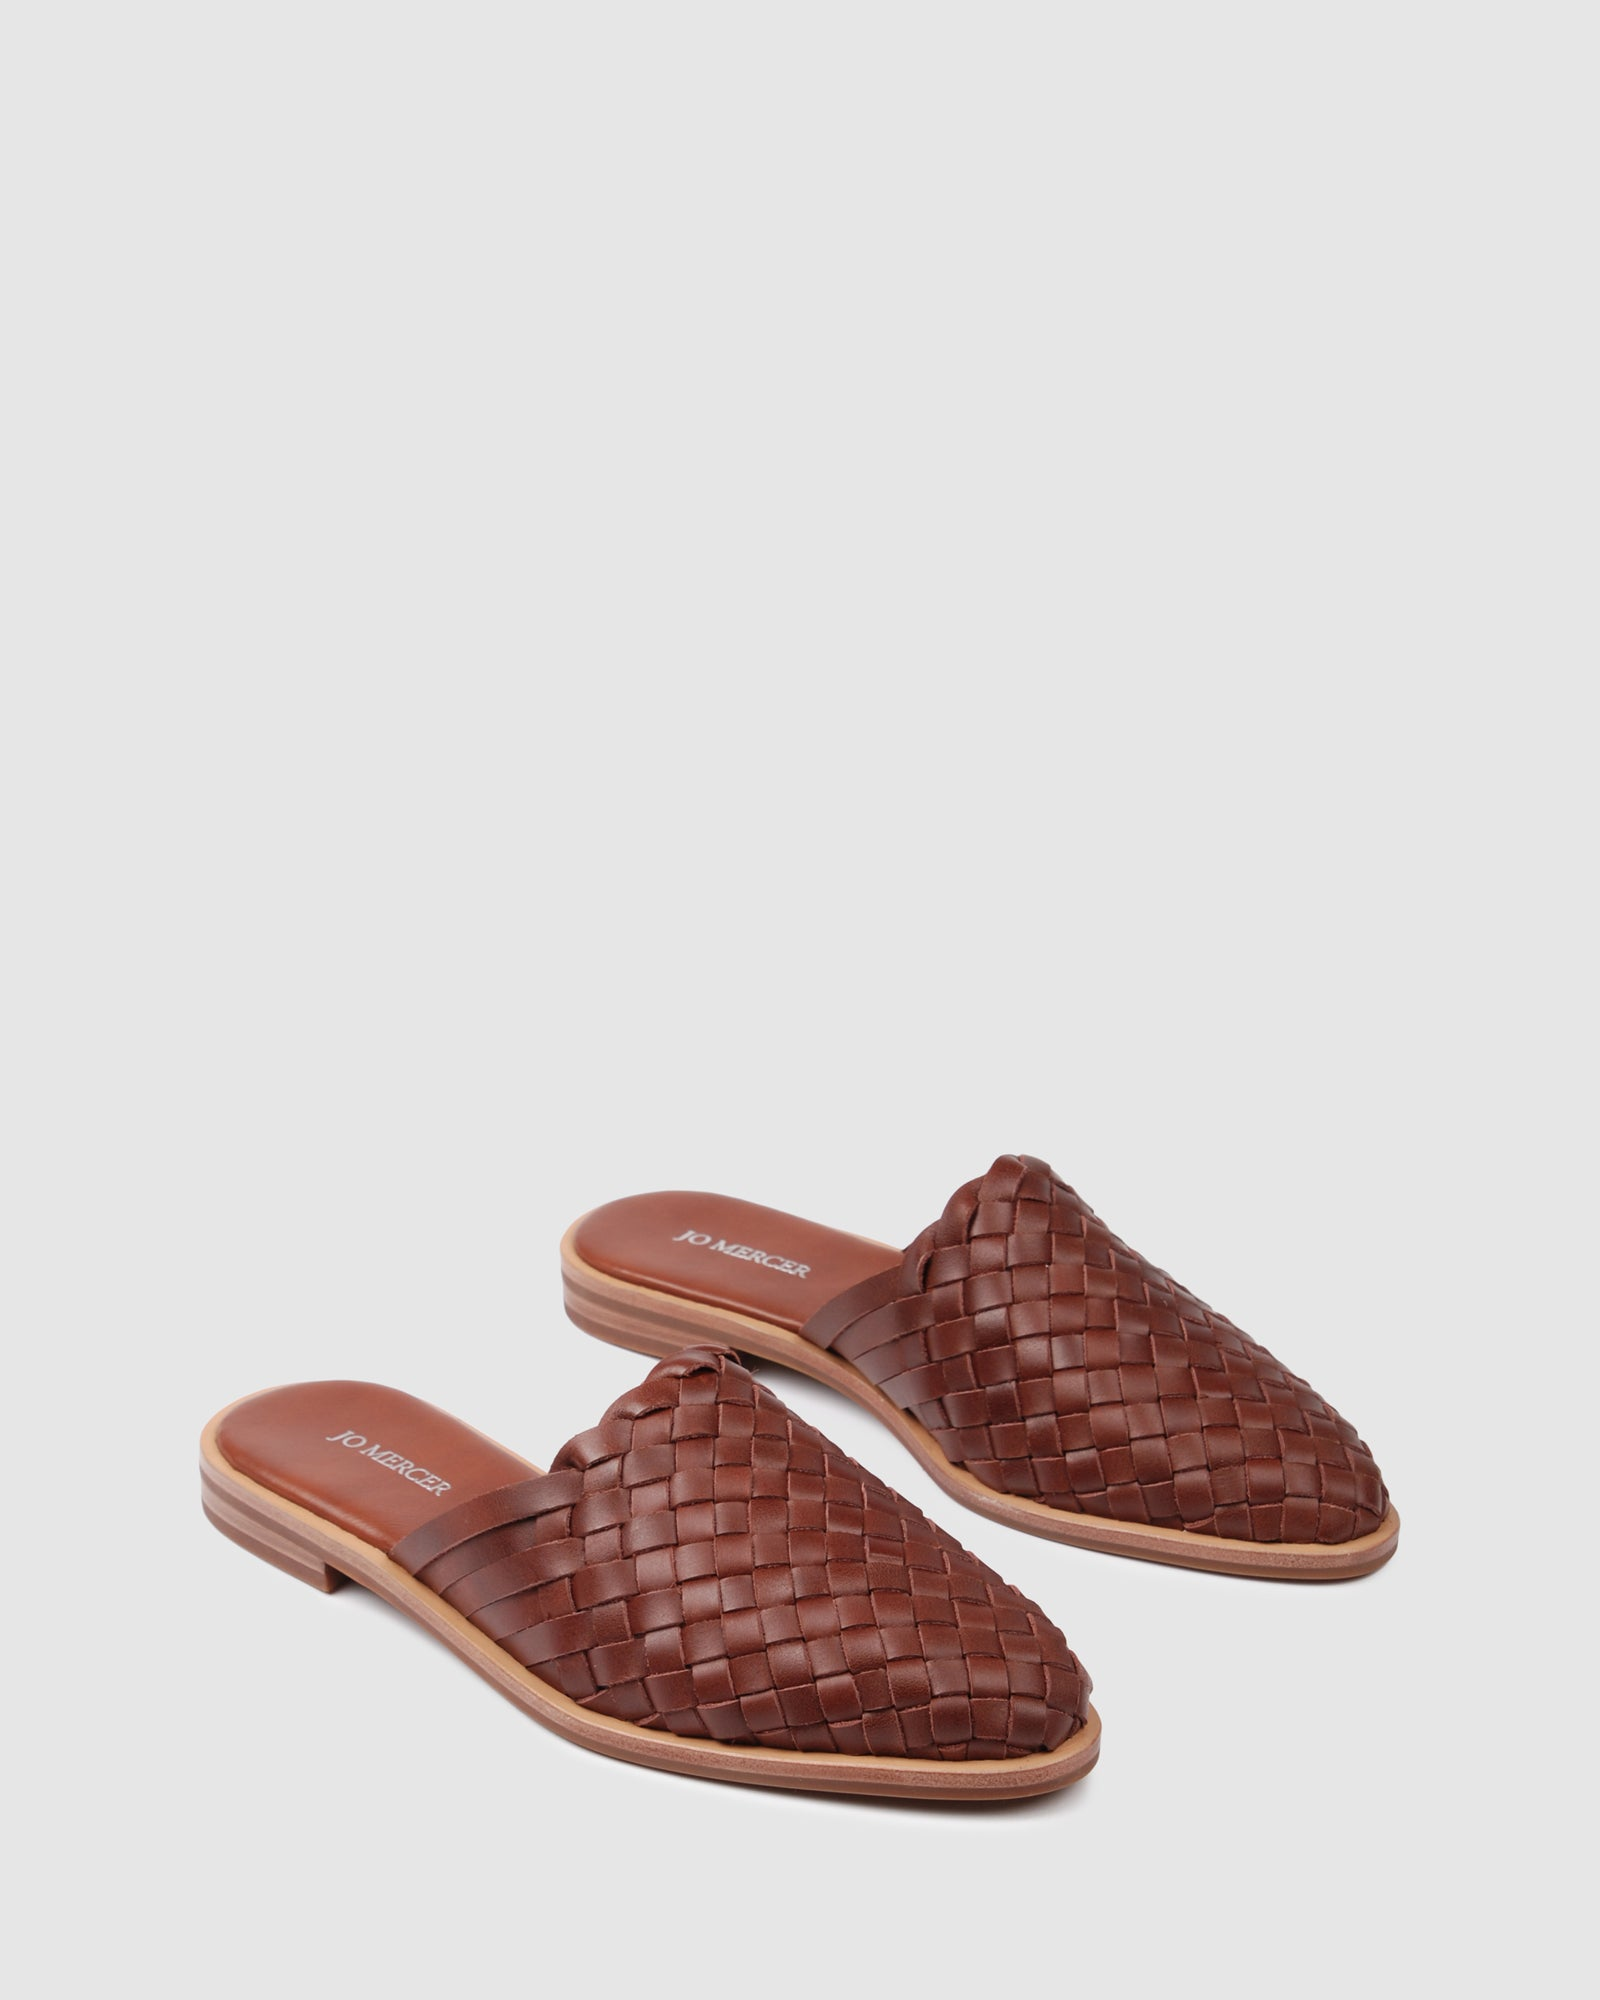 WEAVER CASUAL FLATS DARK BROWN LEATHER